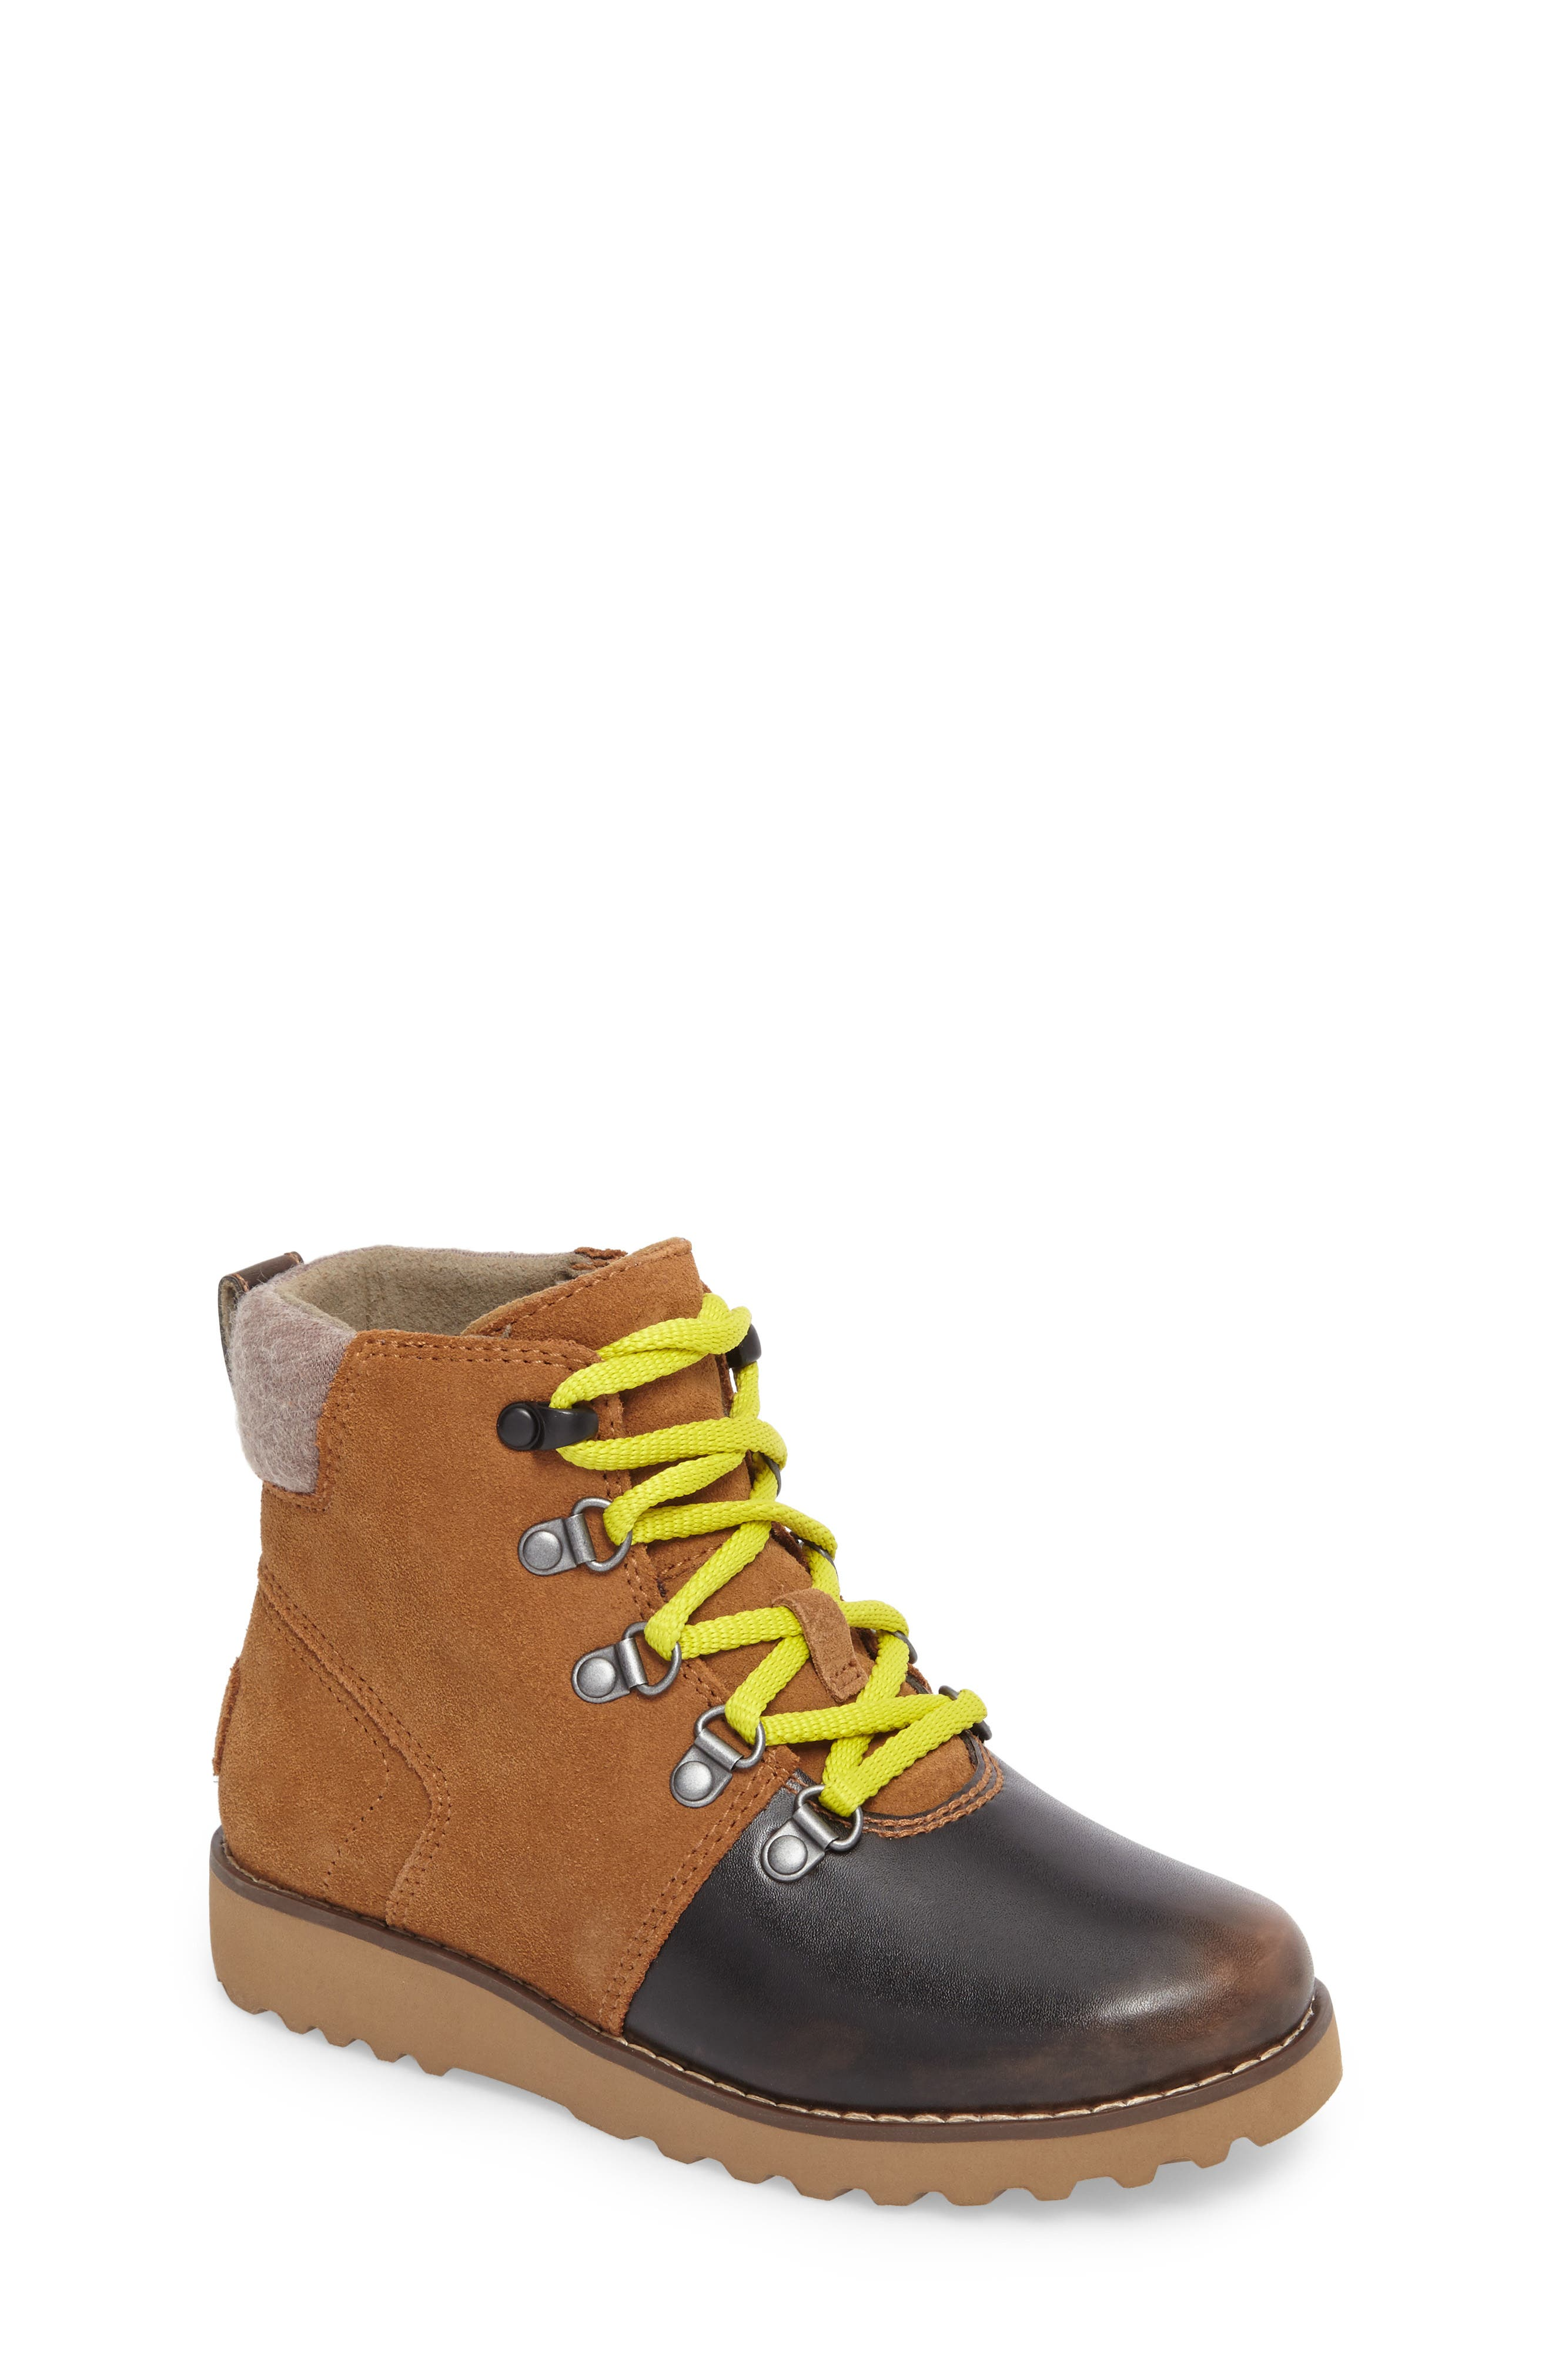 Hilmar Waterproof Winter Hiking Boot,                             Main thumbnail 1, color,                             Grizzly